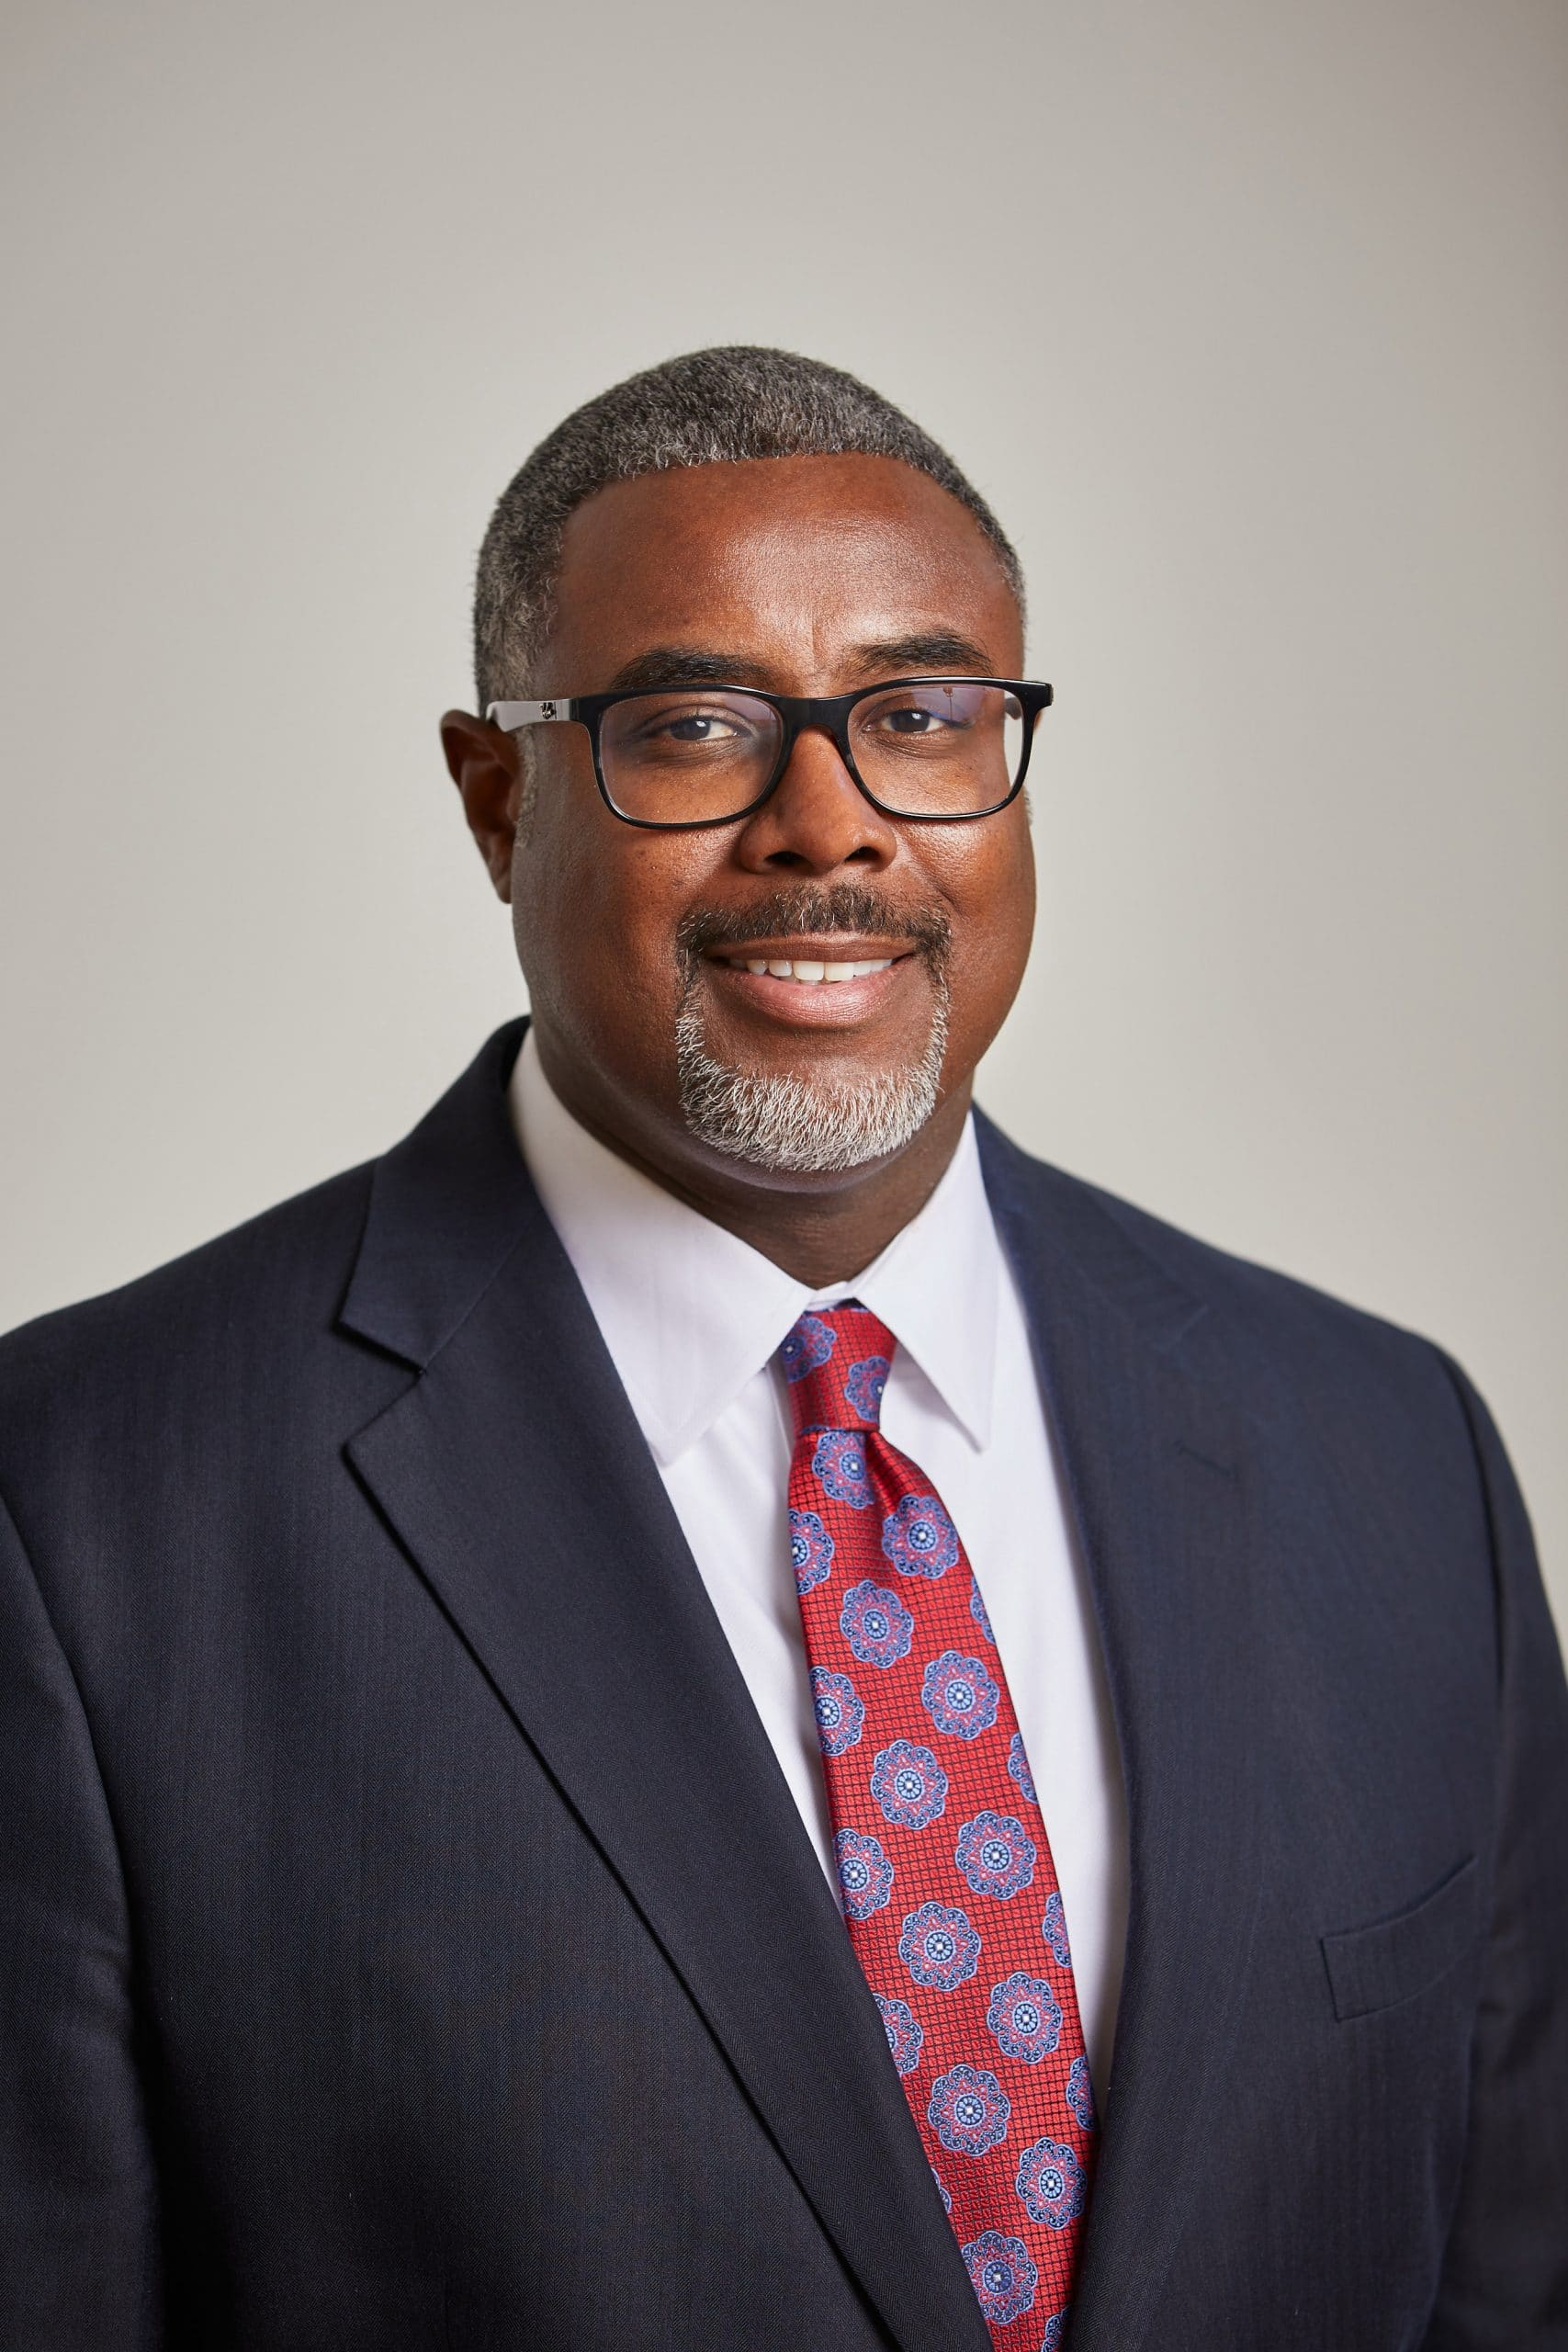 Lester Taylor Speaks About Representing Educators in Employment Law Cases